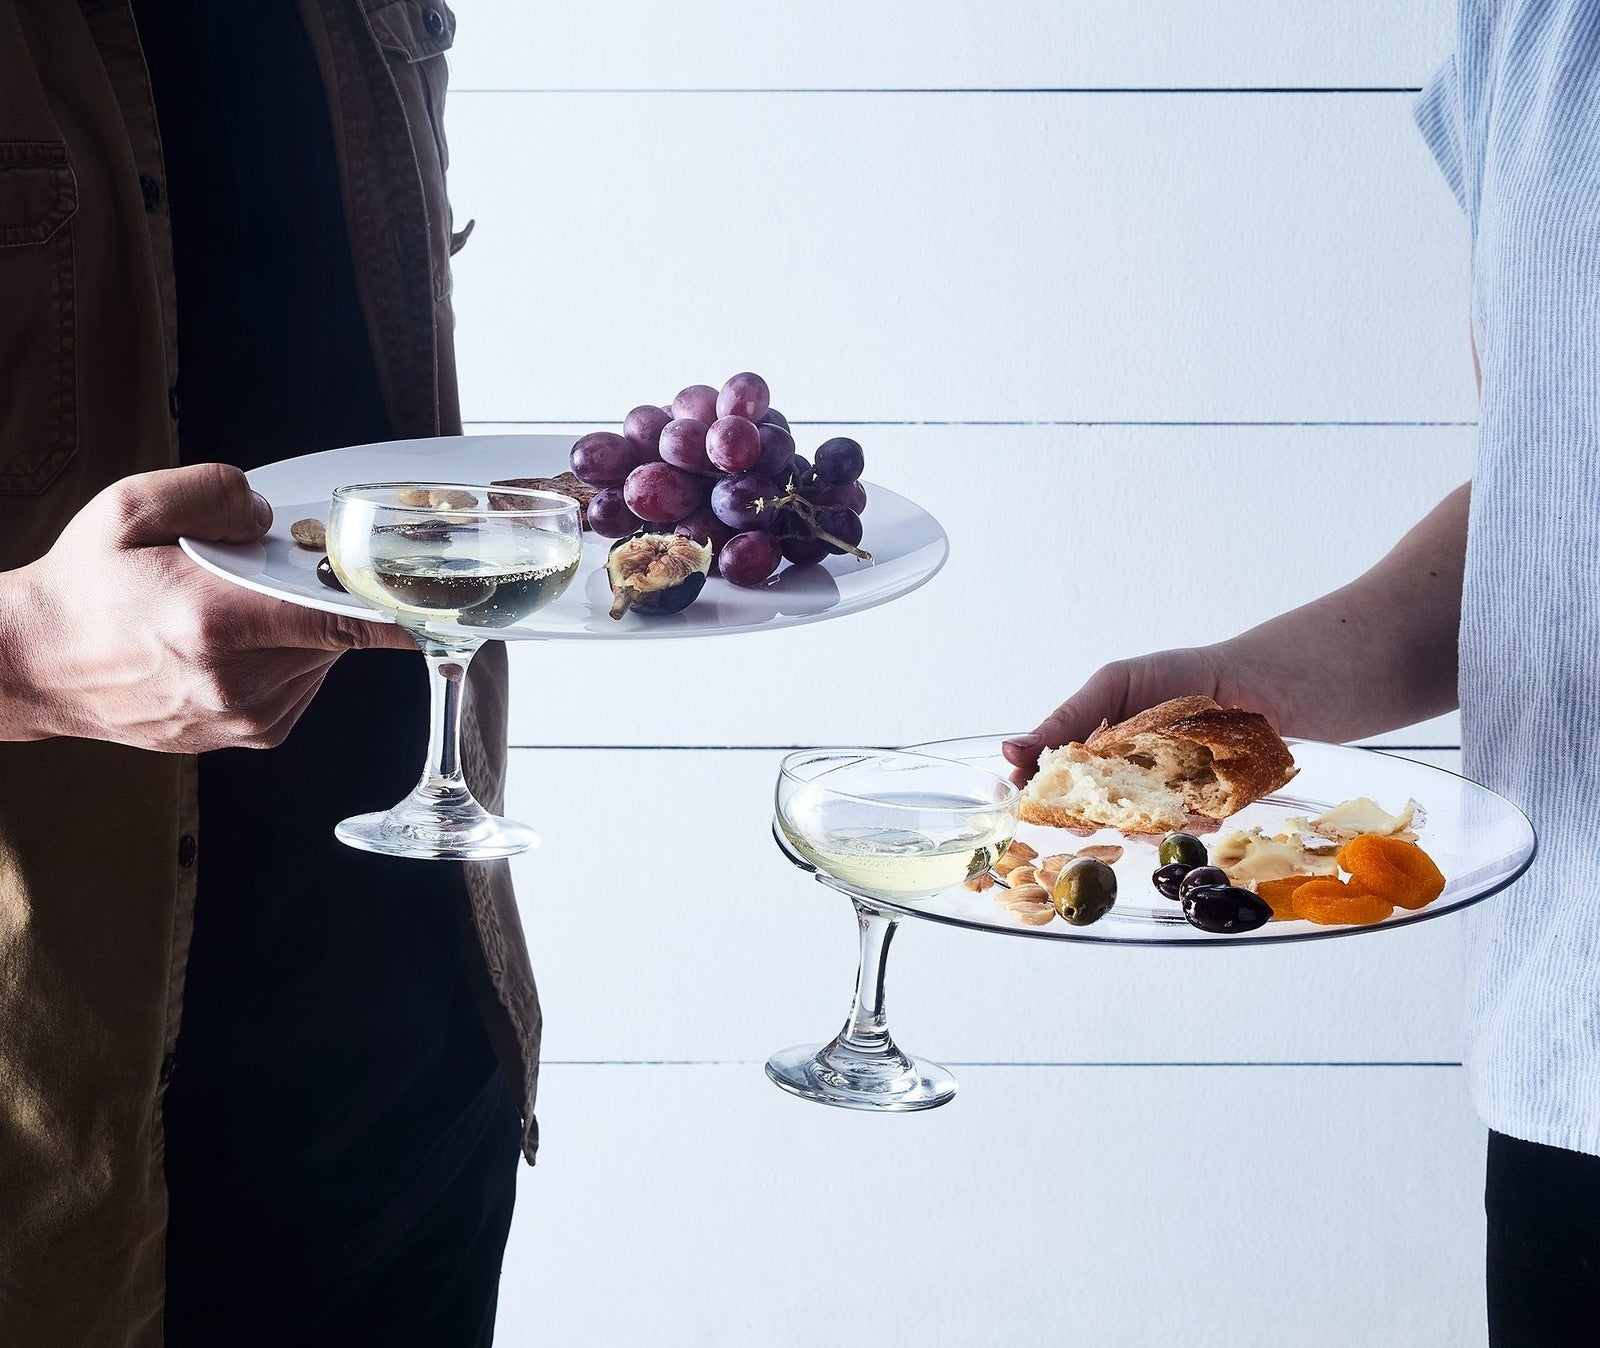 Models holding plates with groove for holding wine glass